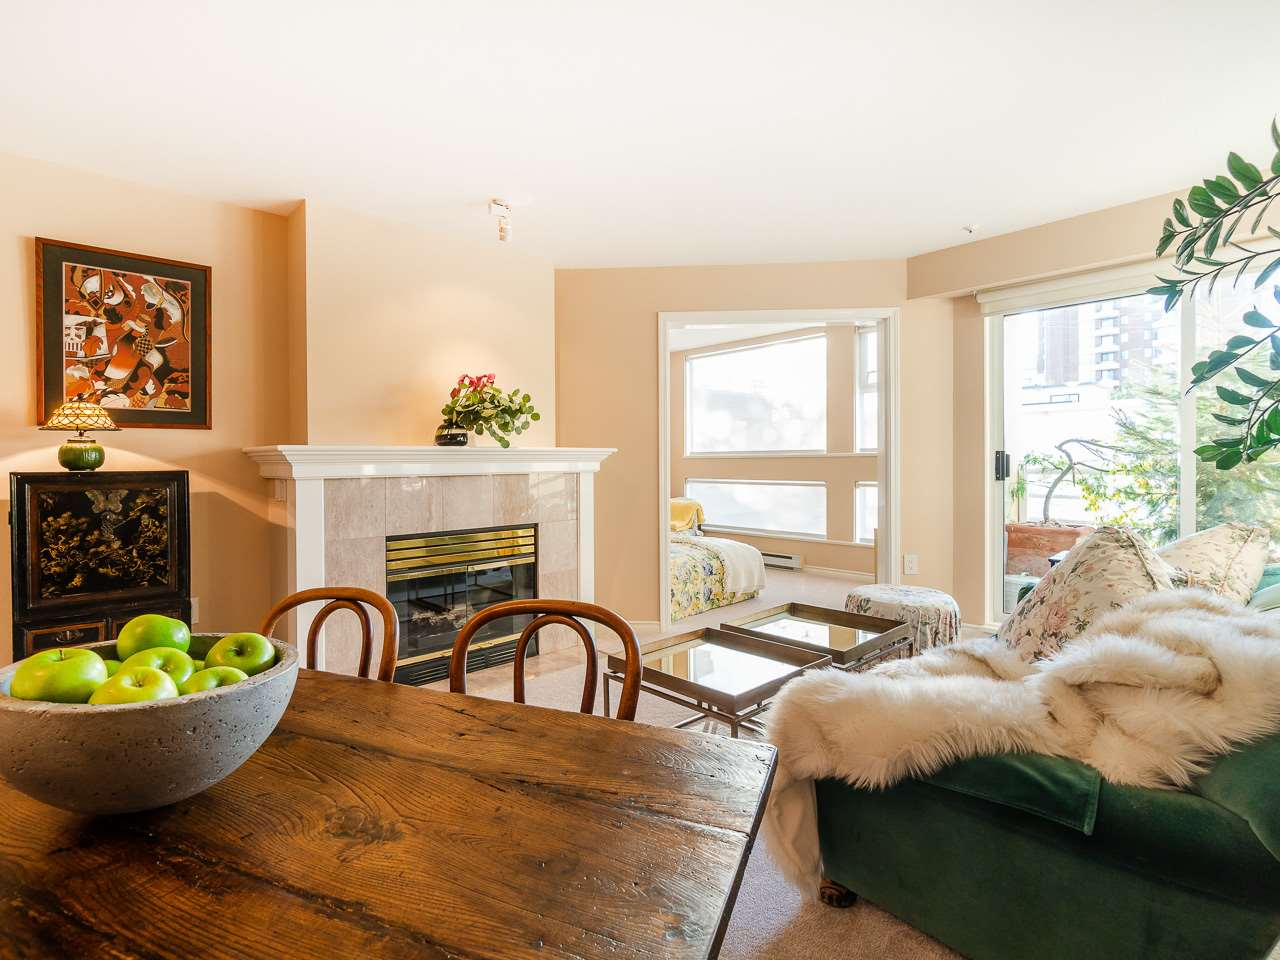 306 2105 W 42ND AVENUE - Kerrisdale Apartment/Condo for sale, 1 Bedroom (R2511504) - #3